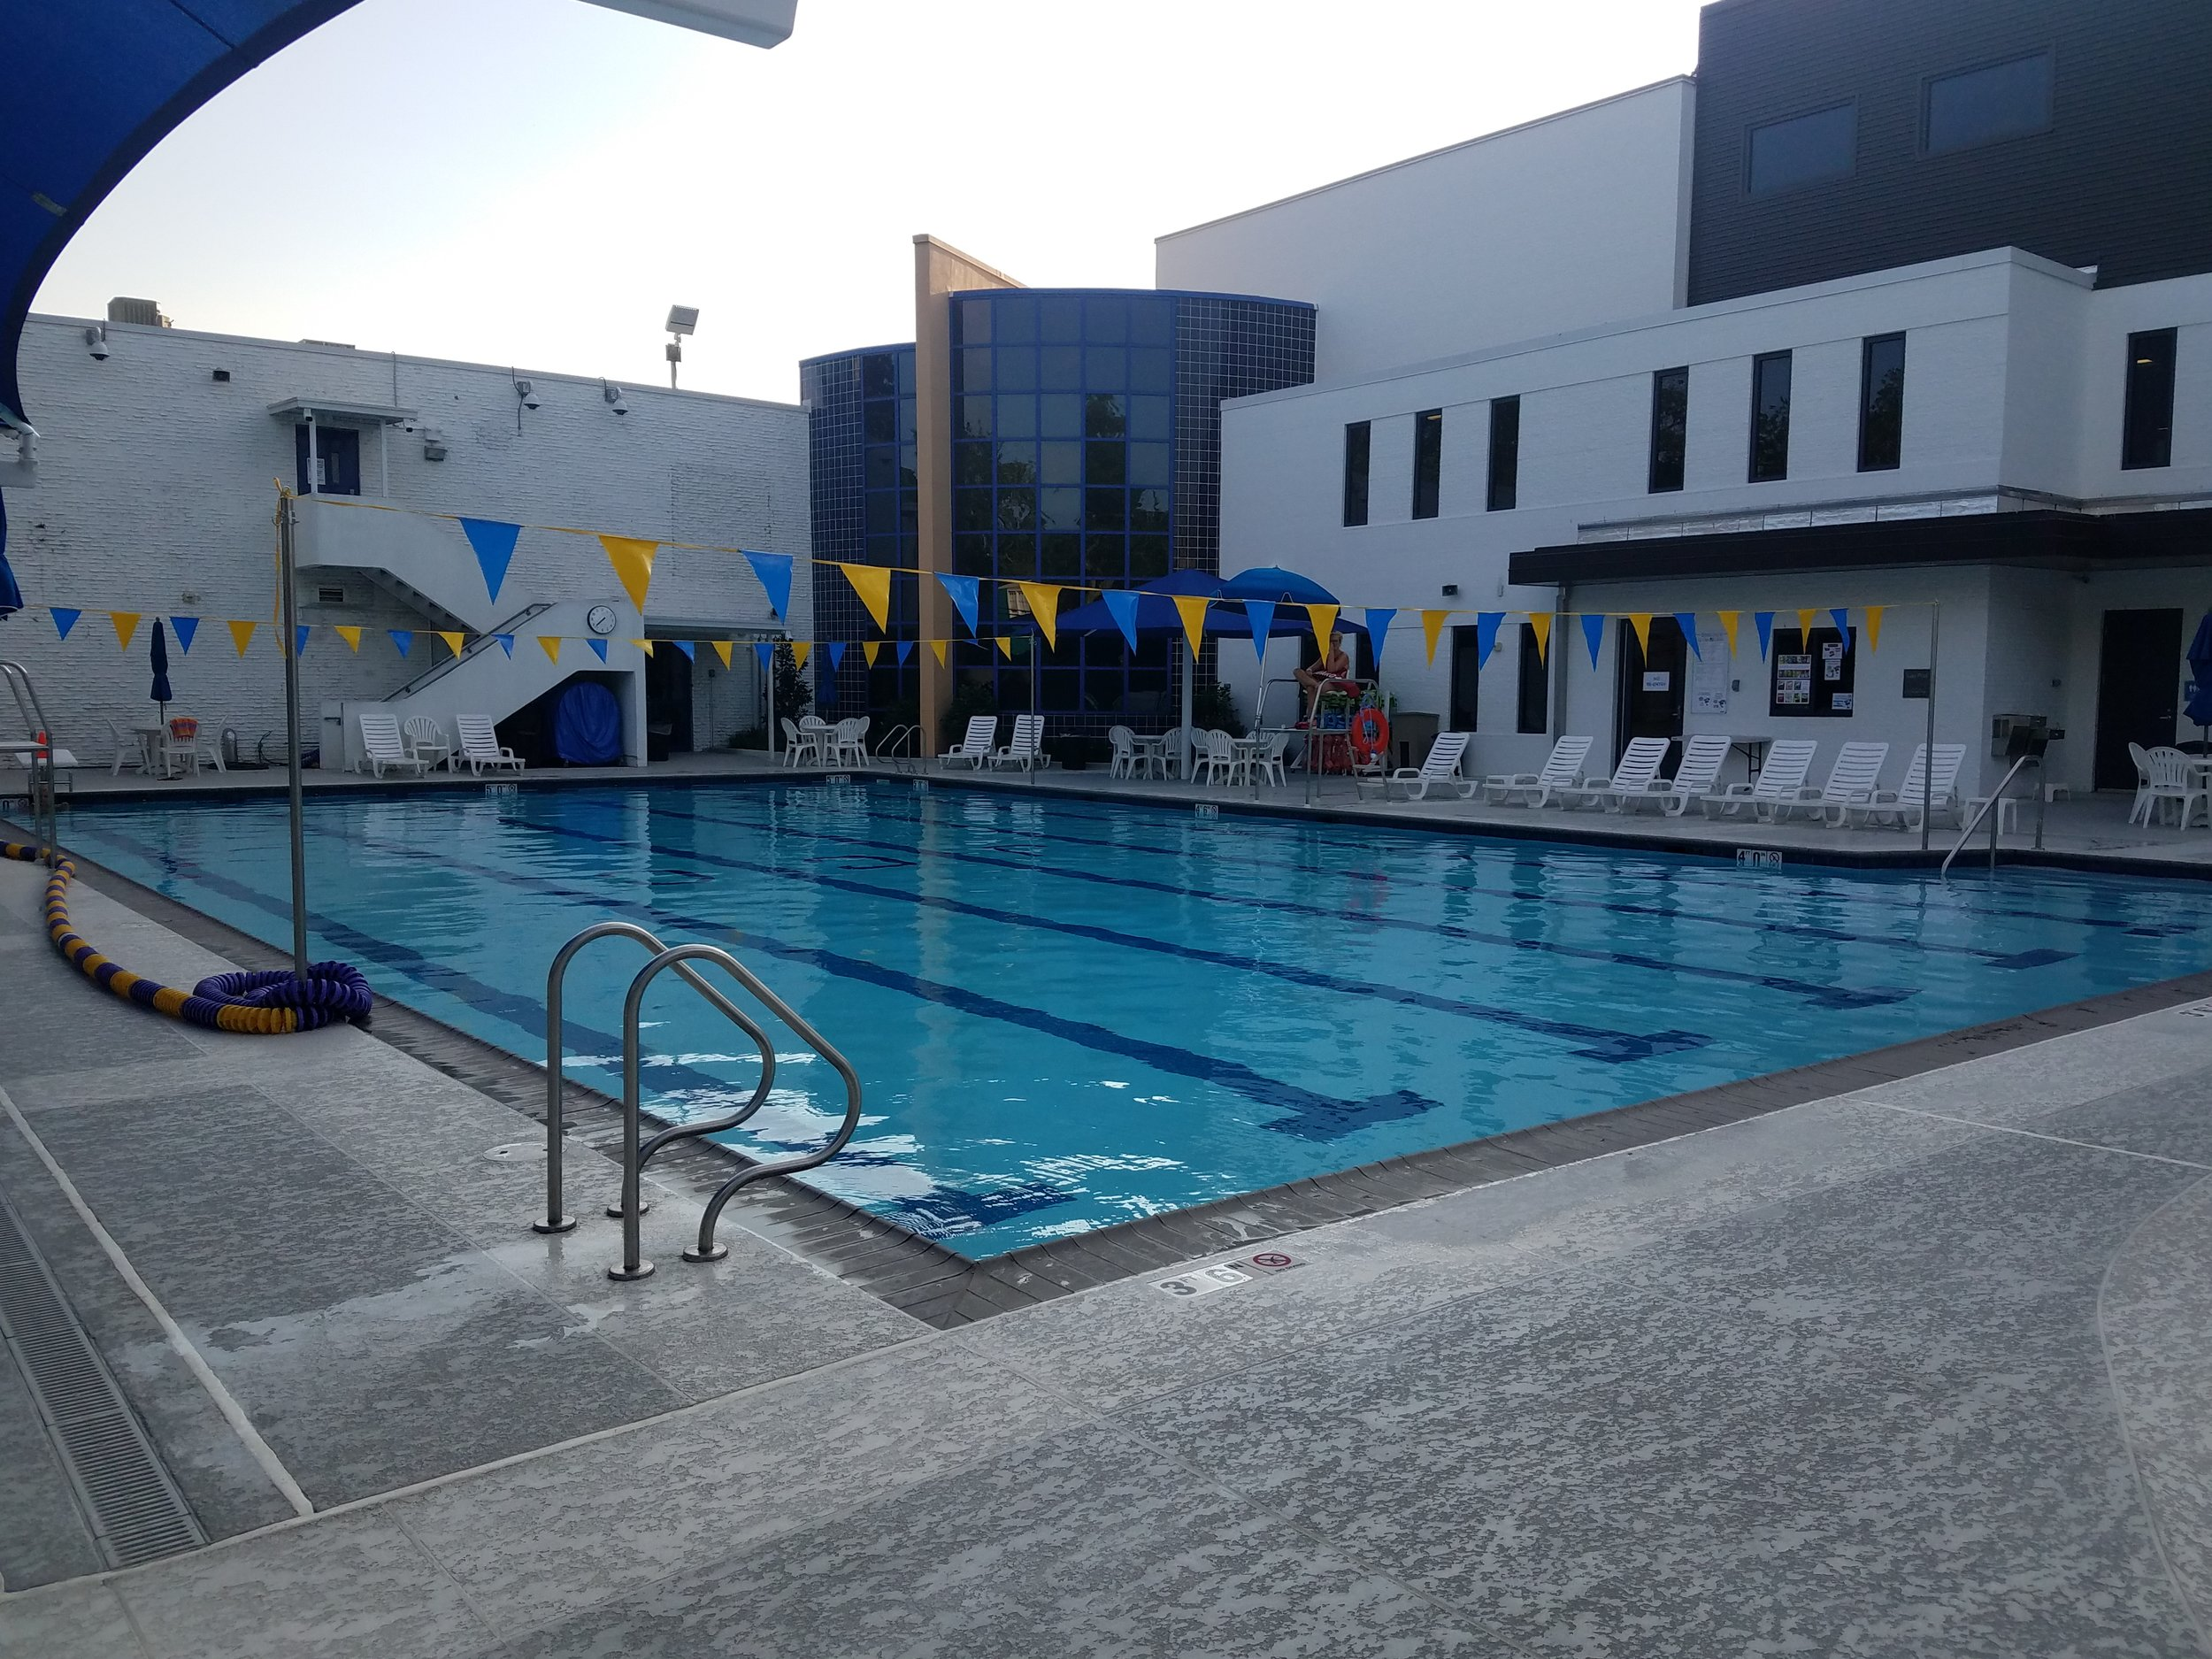 Lap pool area at New Orleans JCC in LA